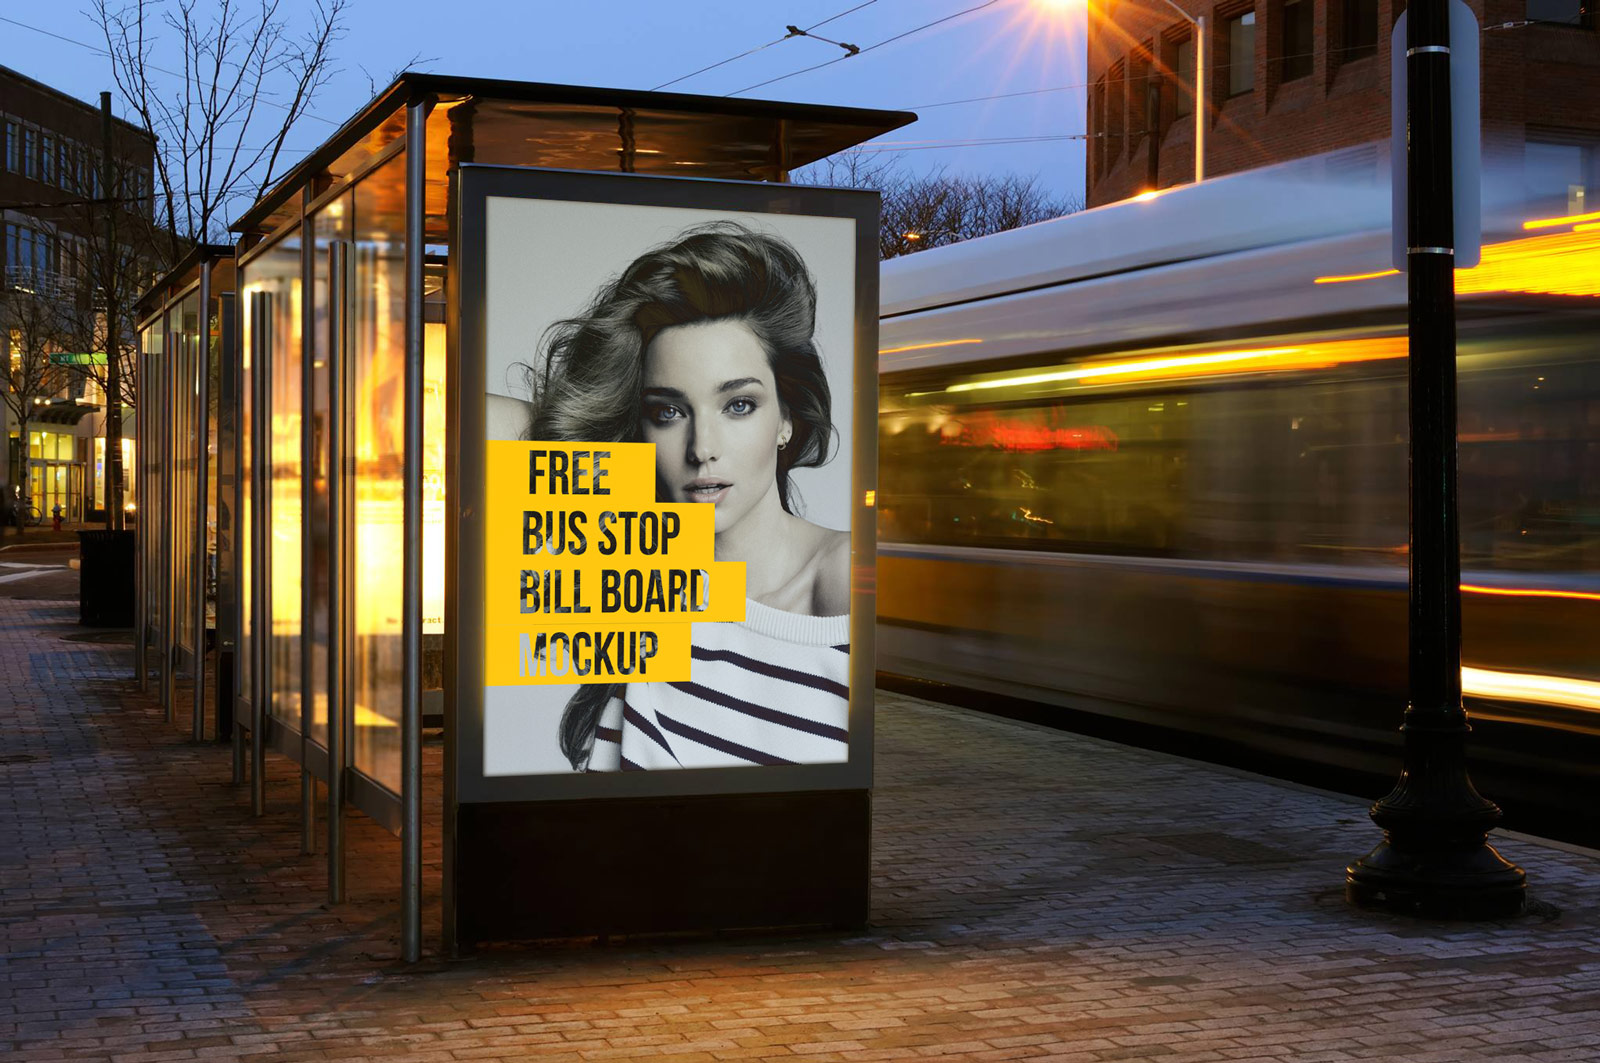 Free-Outdoor-Advertising-Bus-Stop-Billboard-Mockup-PSD-File